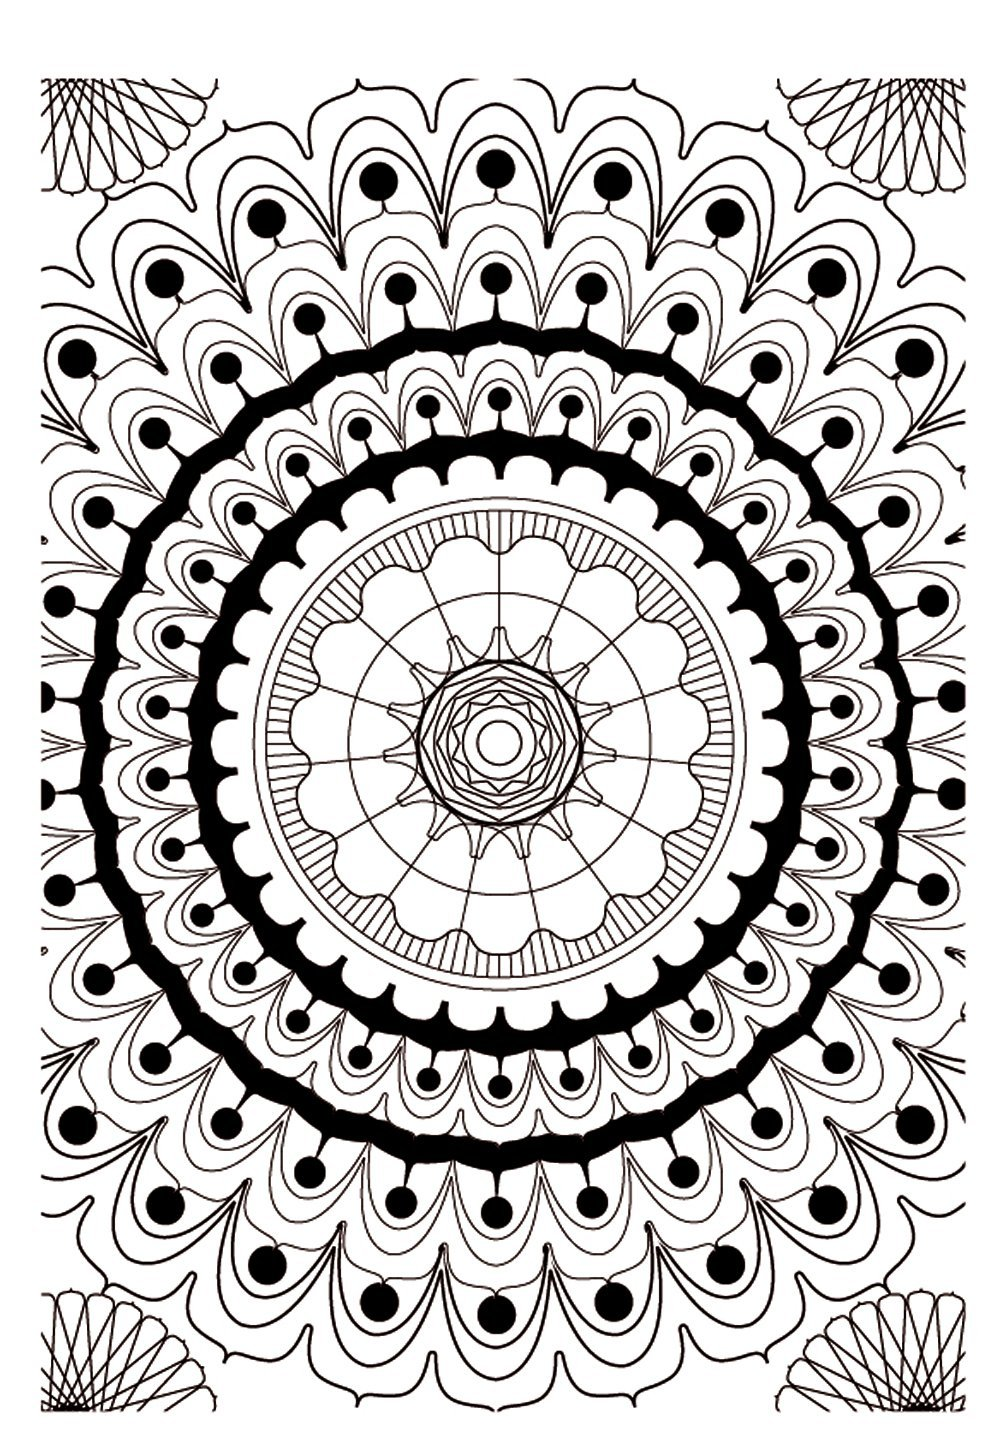 Mandala to color difficult 13 difficult mandalas for for Coloring pages with lots of detail